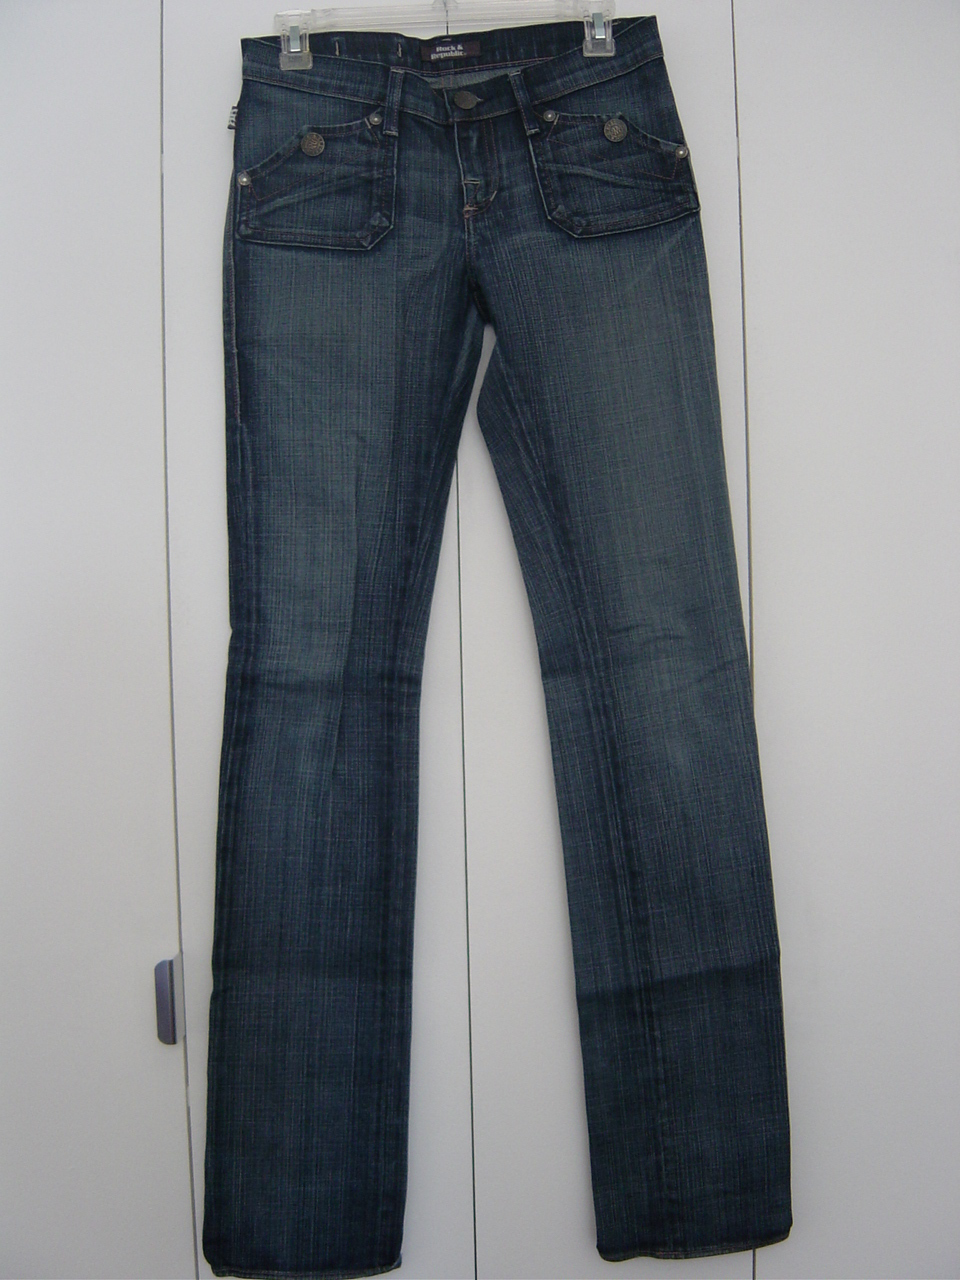 Rock & Republic Gwen Jeans in Prime (Size: 26)  EUC